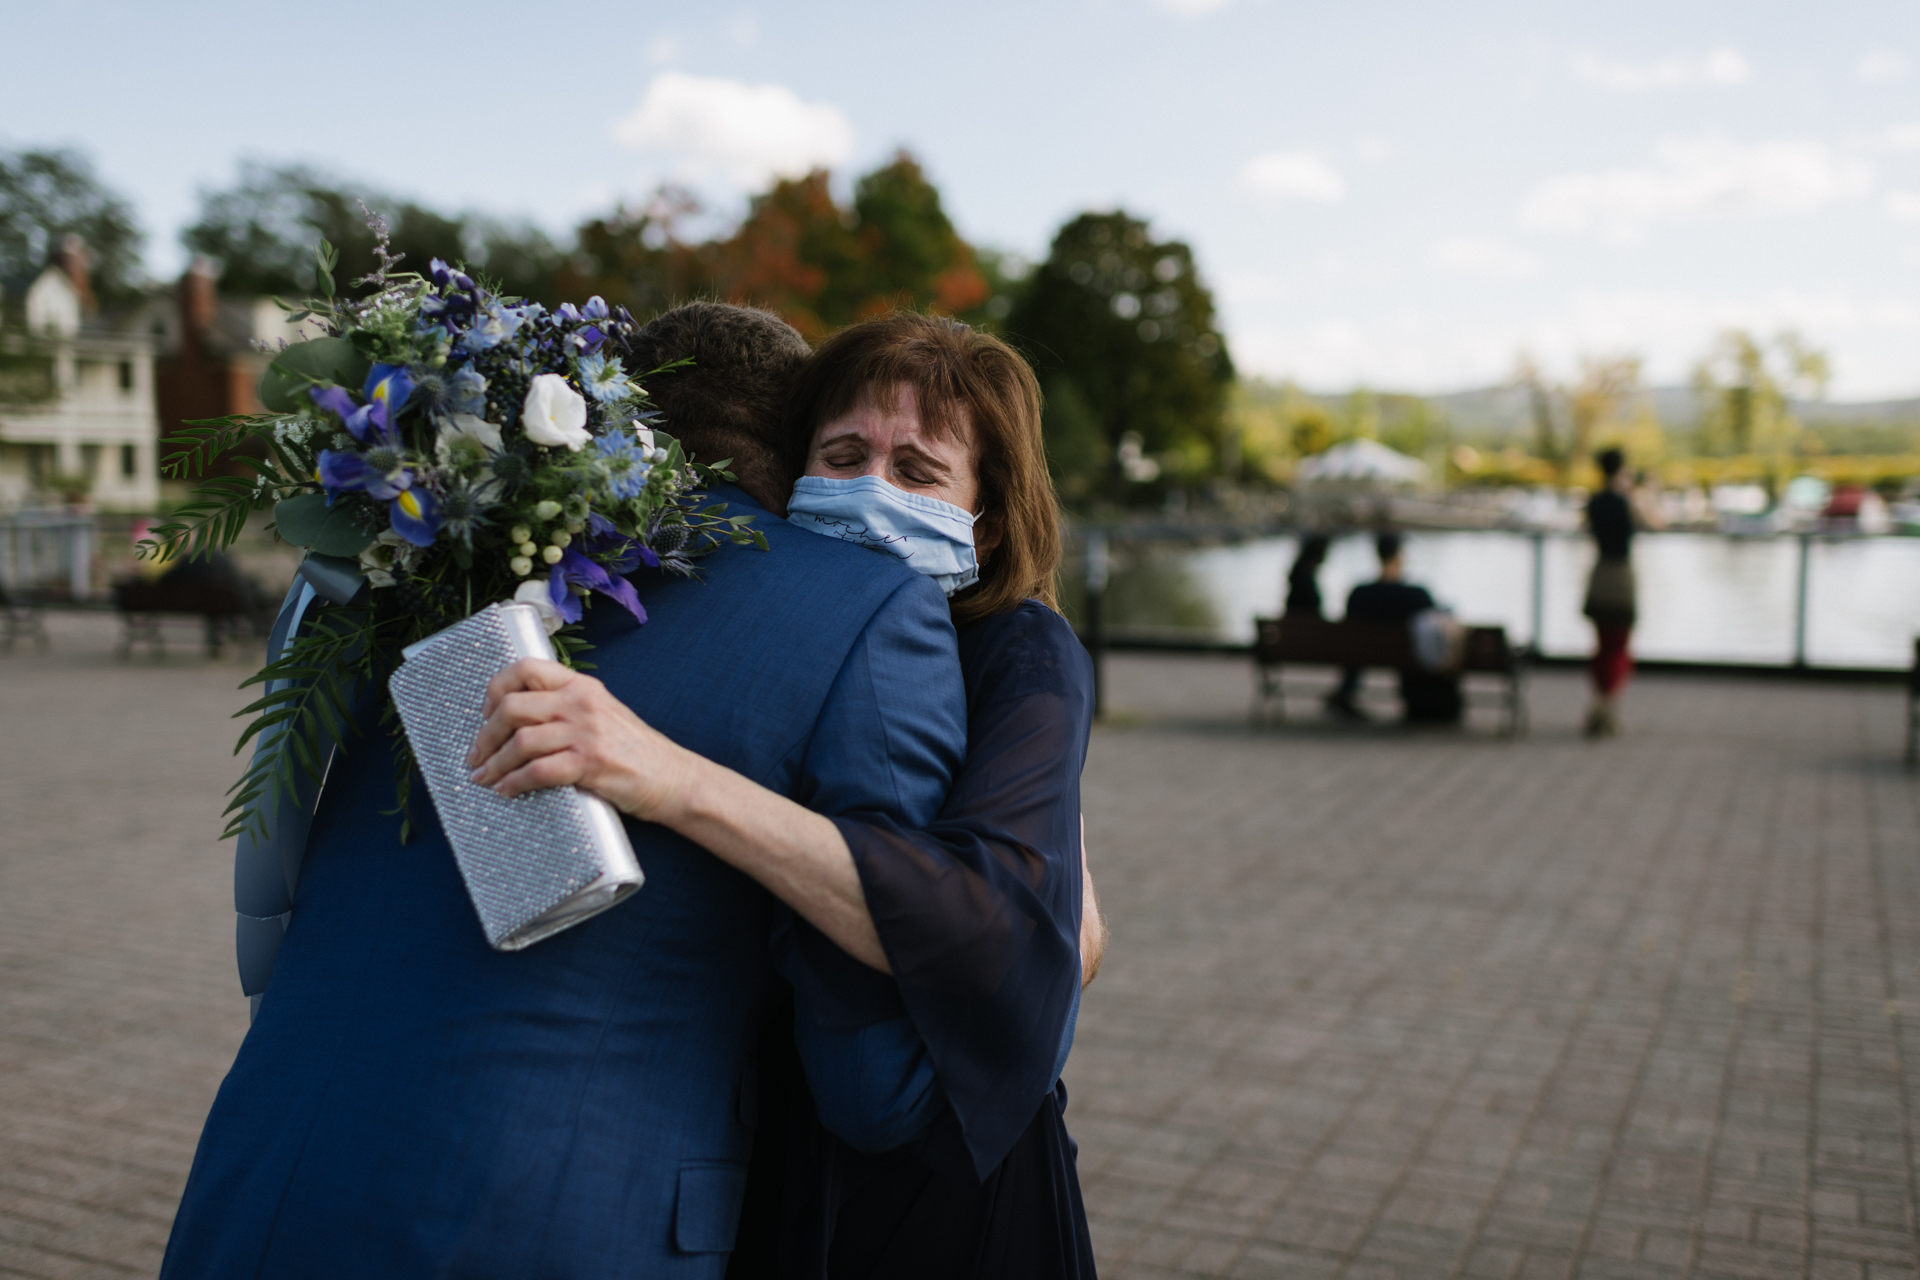 Dockside Park NY Wedding Photography | The mother of the groom hugs her son with emotion